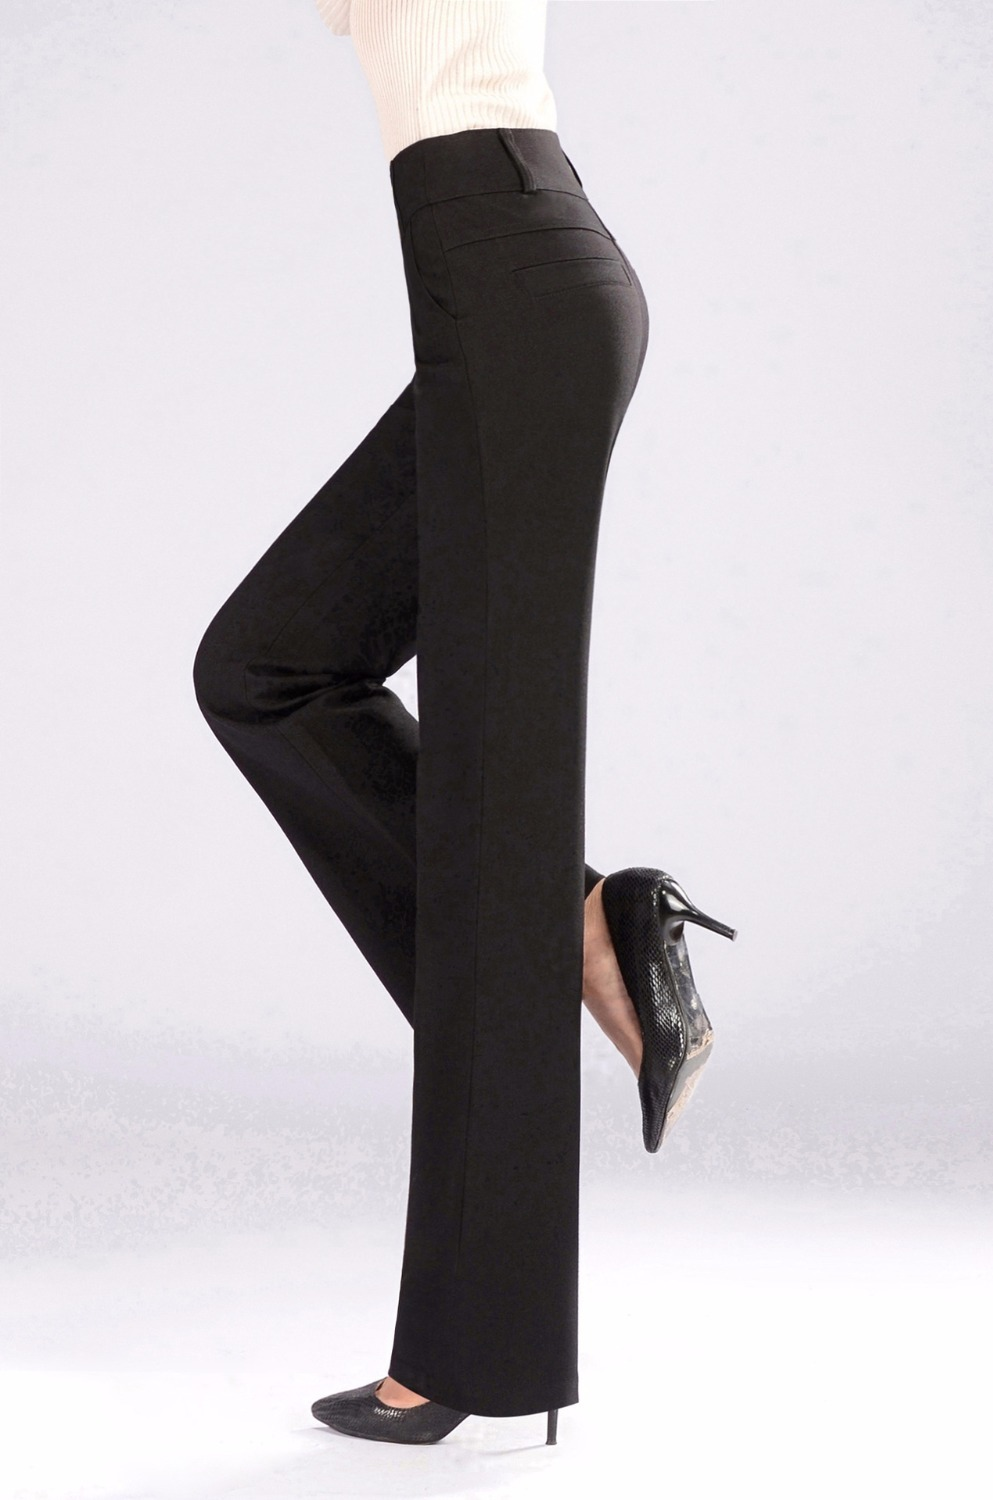 Compare Prices on Women Dress Pants- Online Shopping/Buy Low Price ...